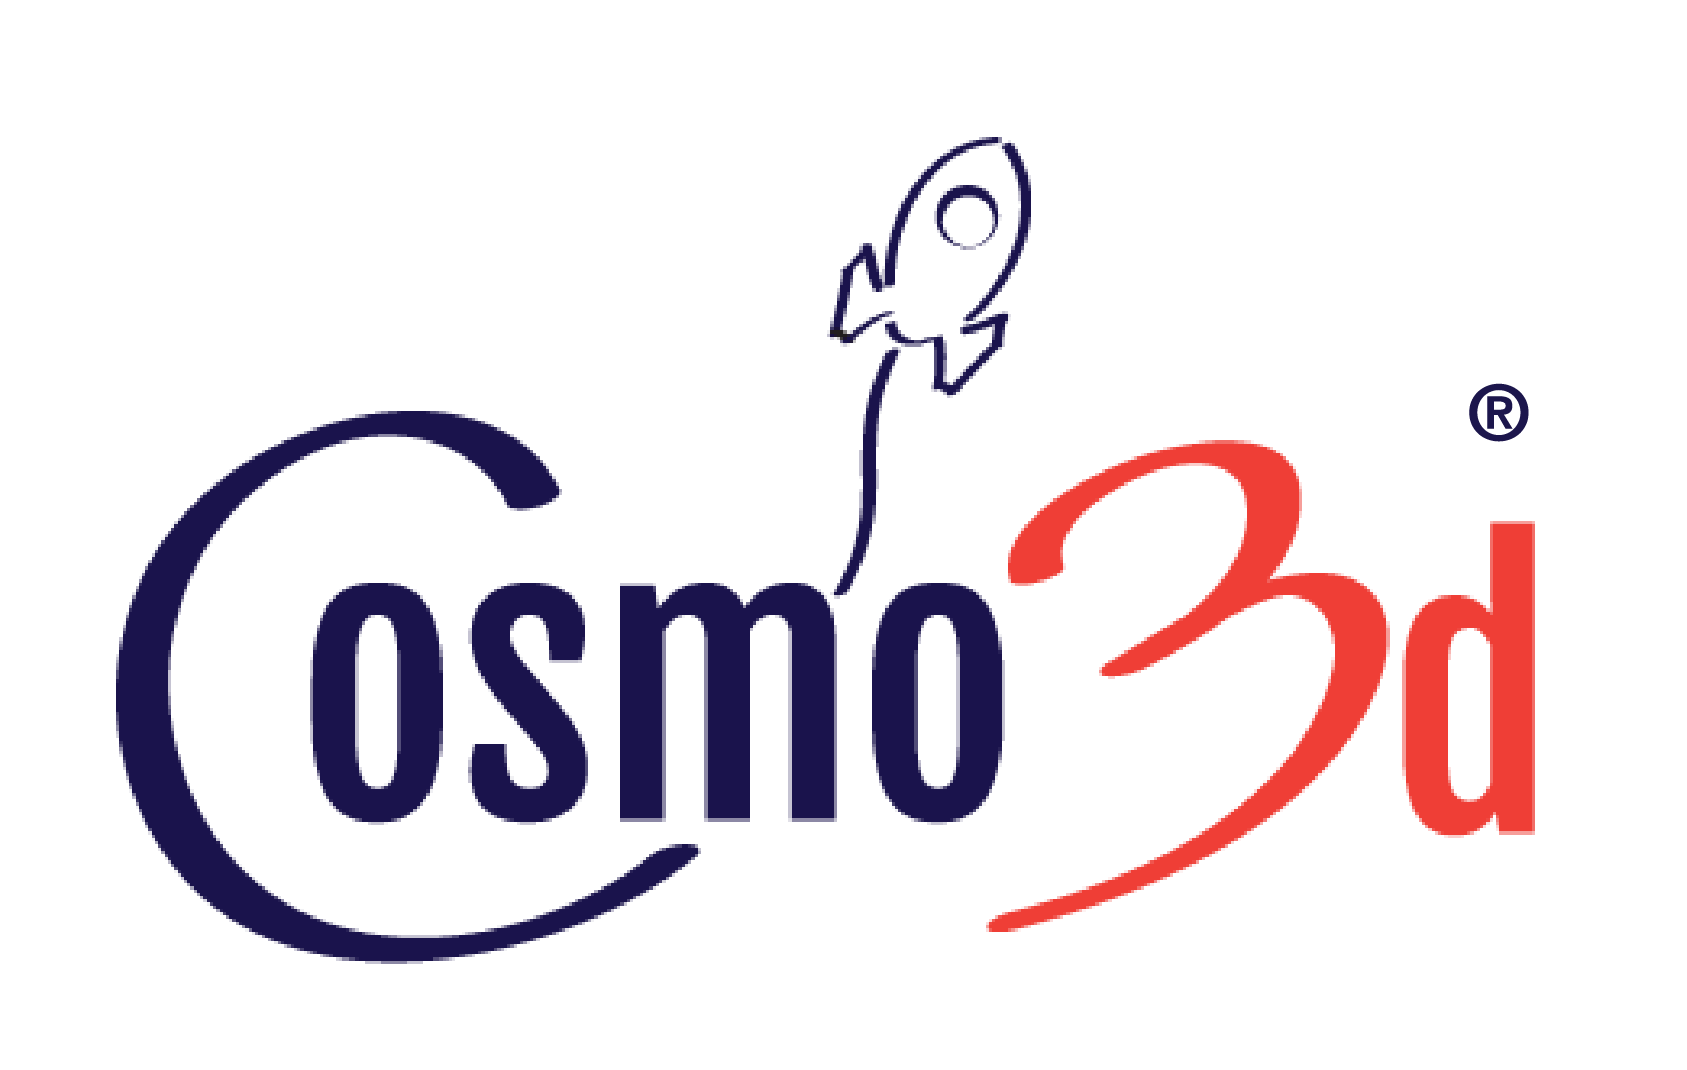 /Cosmo%203D